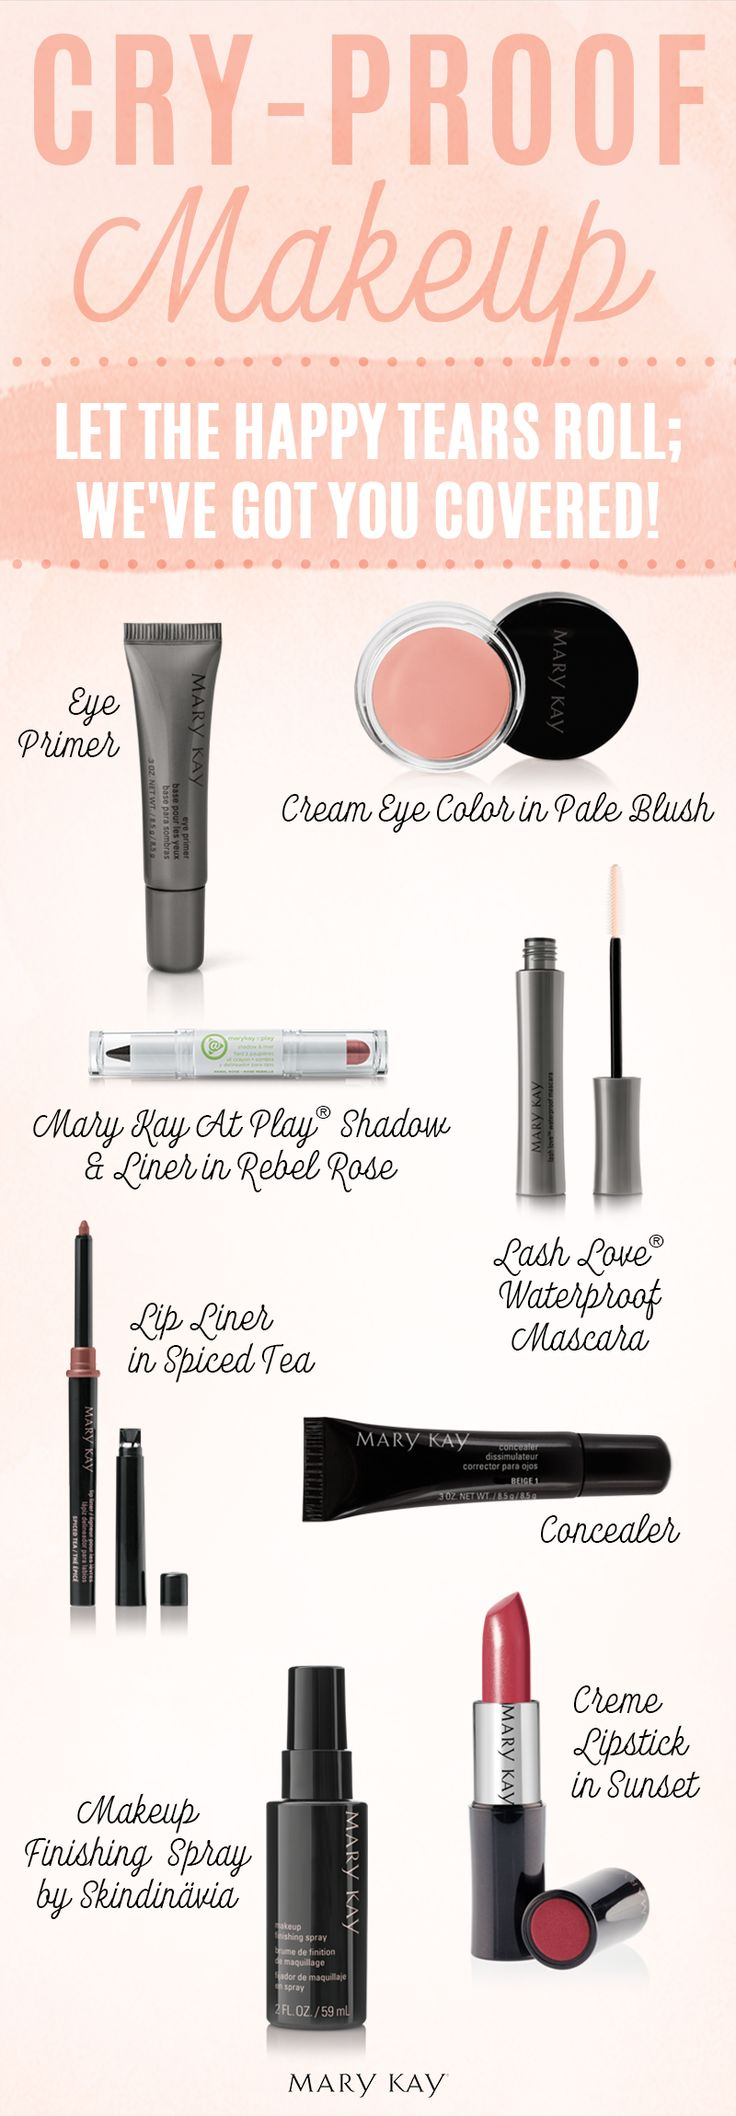 Let me help you achieve your waterproof look for your friend's special day.  Jennifer Emanuel Mary Kay Sales Director Call/Text: 214-405-2512 Facebook: www.facebook.com/jenniferemanuelmk